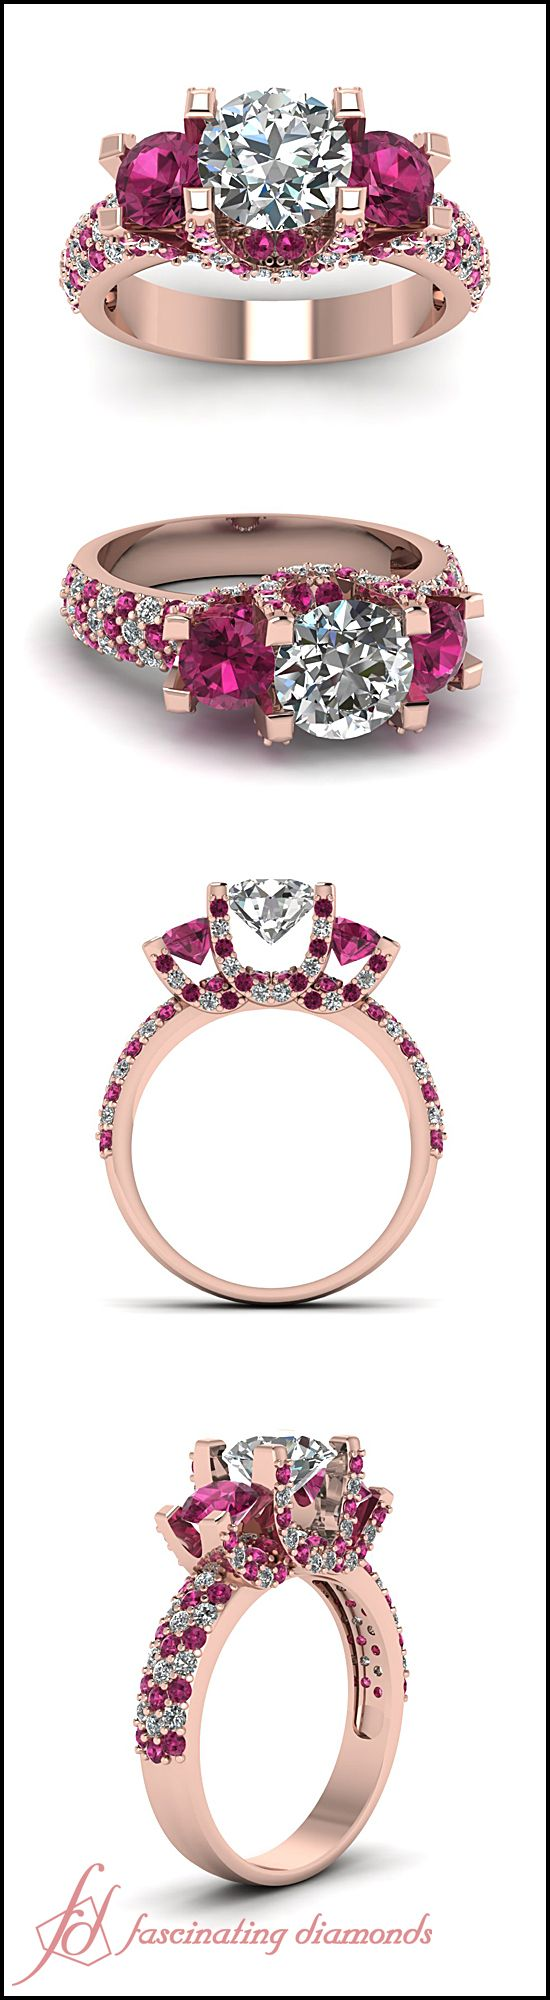 【Jewelry in My Box】Enigma Sparkle Ring || Round Cut Diamond Side Stone Ring With Pink Sapphire In 14K Rose Gold